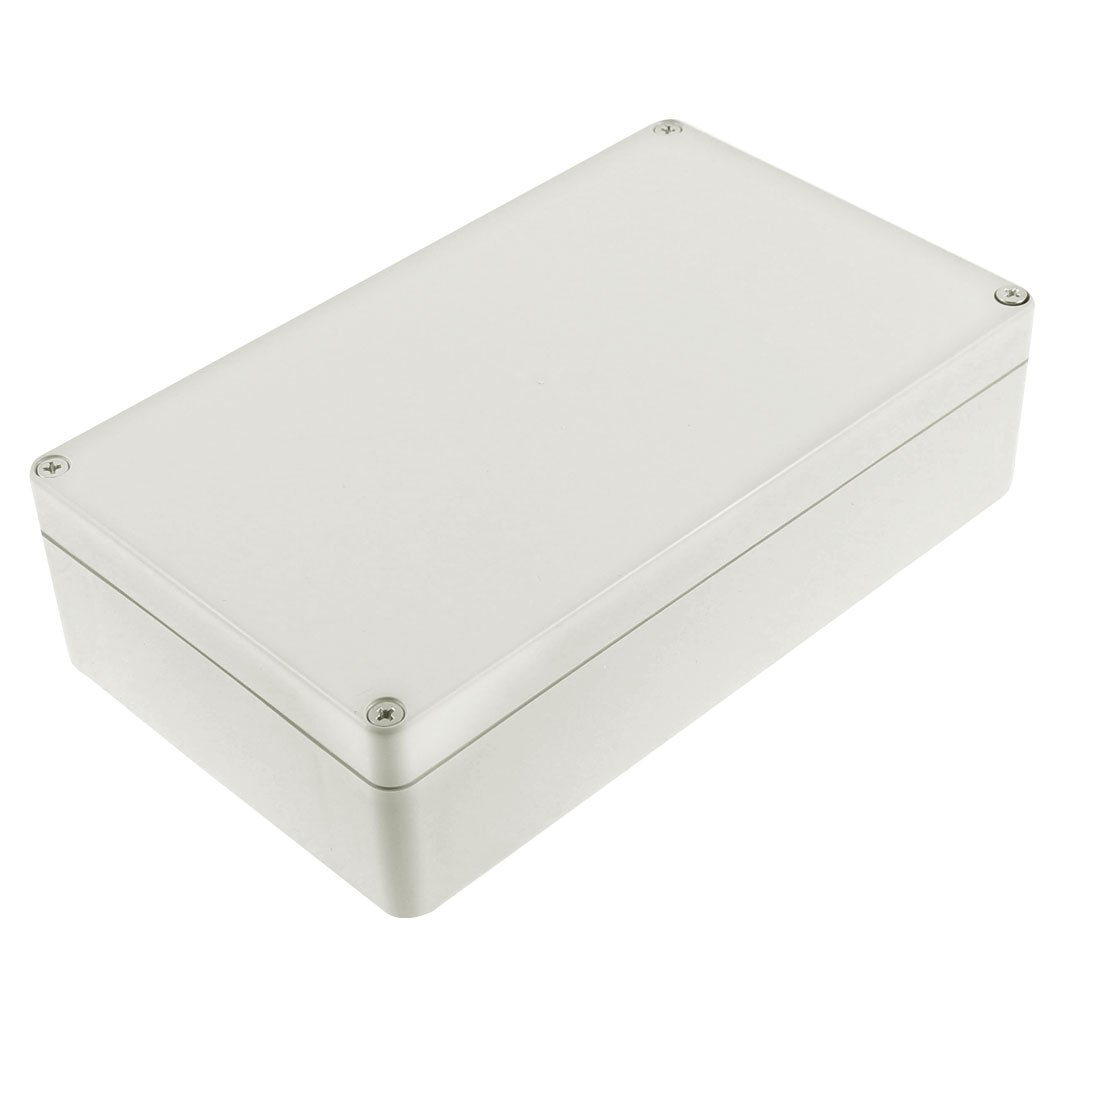 uxcell Water Resistant Plastic Enclosure Project Junction Box Case a15081800ux0518